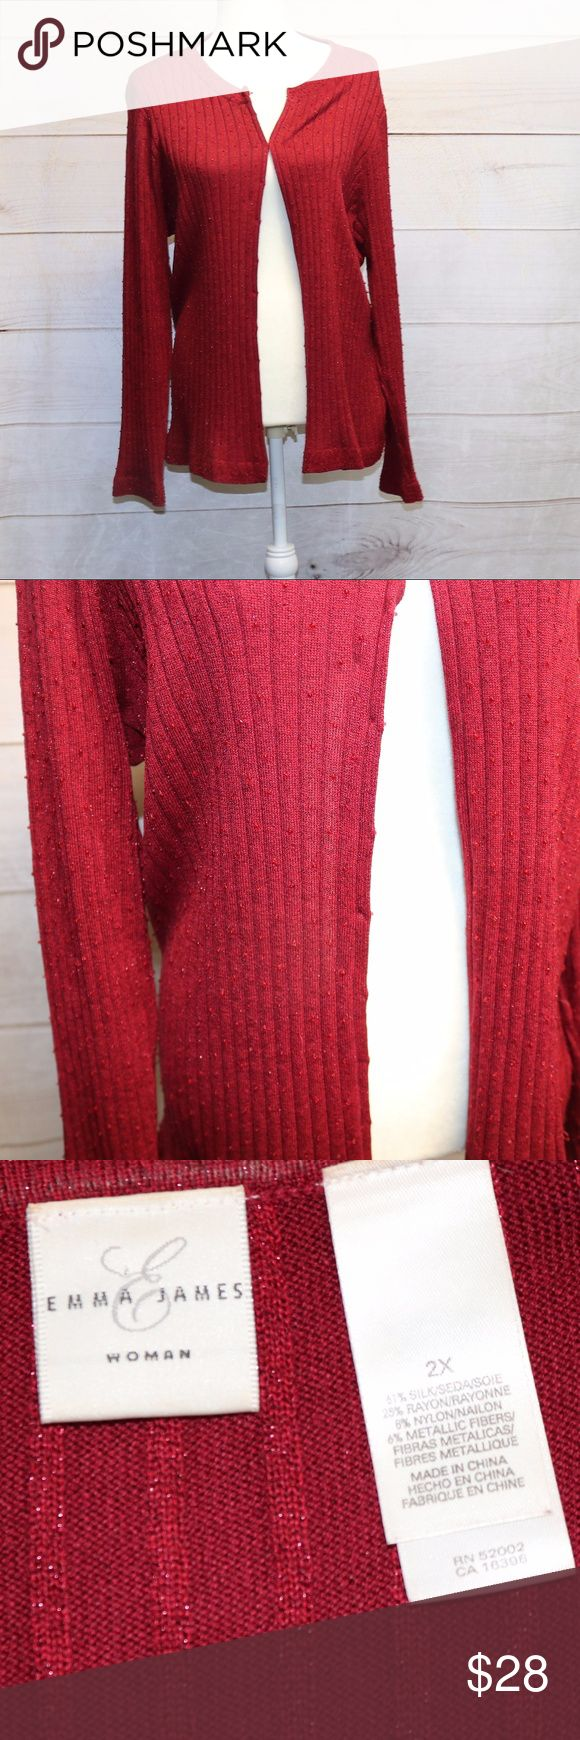 Emma James Cardigan size 2x EUC Emma James Cardigan Red Size: 2x Hook eye closure Has small beading detail on the front of the sweater Emma James Sweaters Cardigans